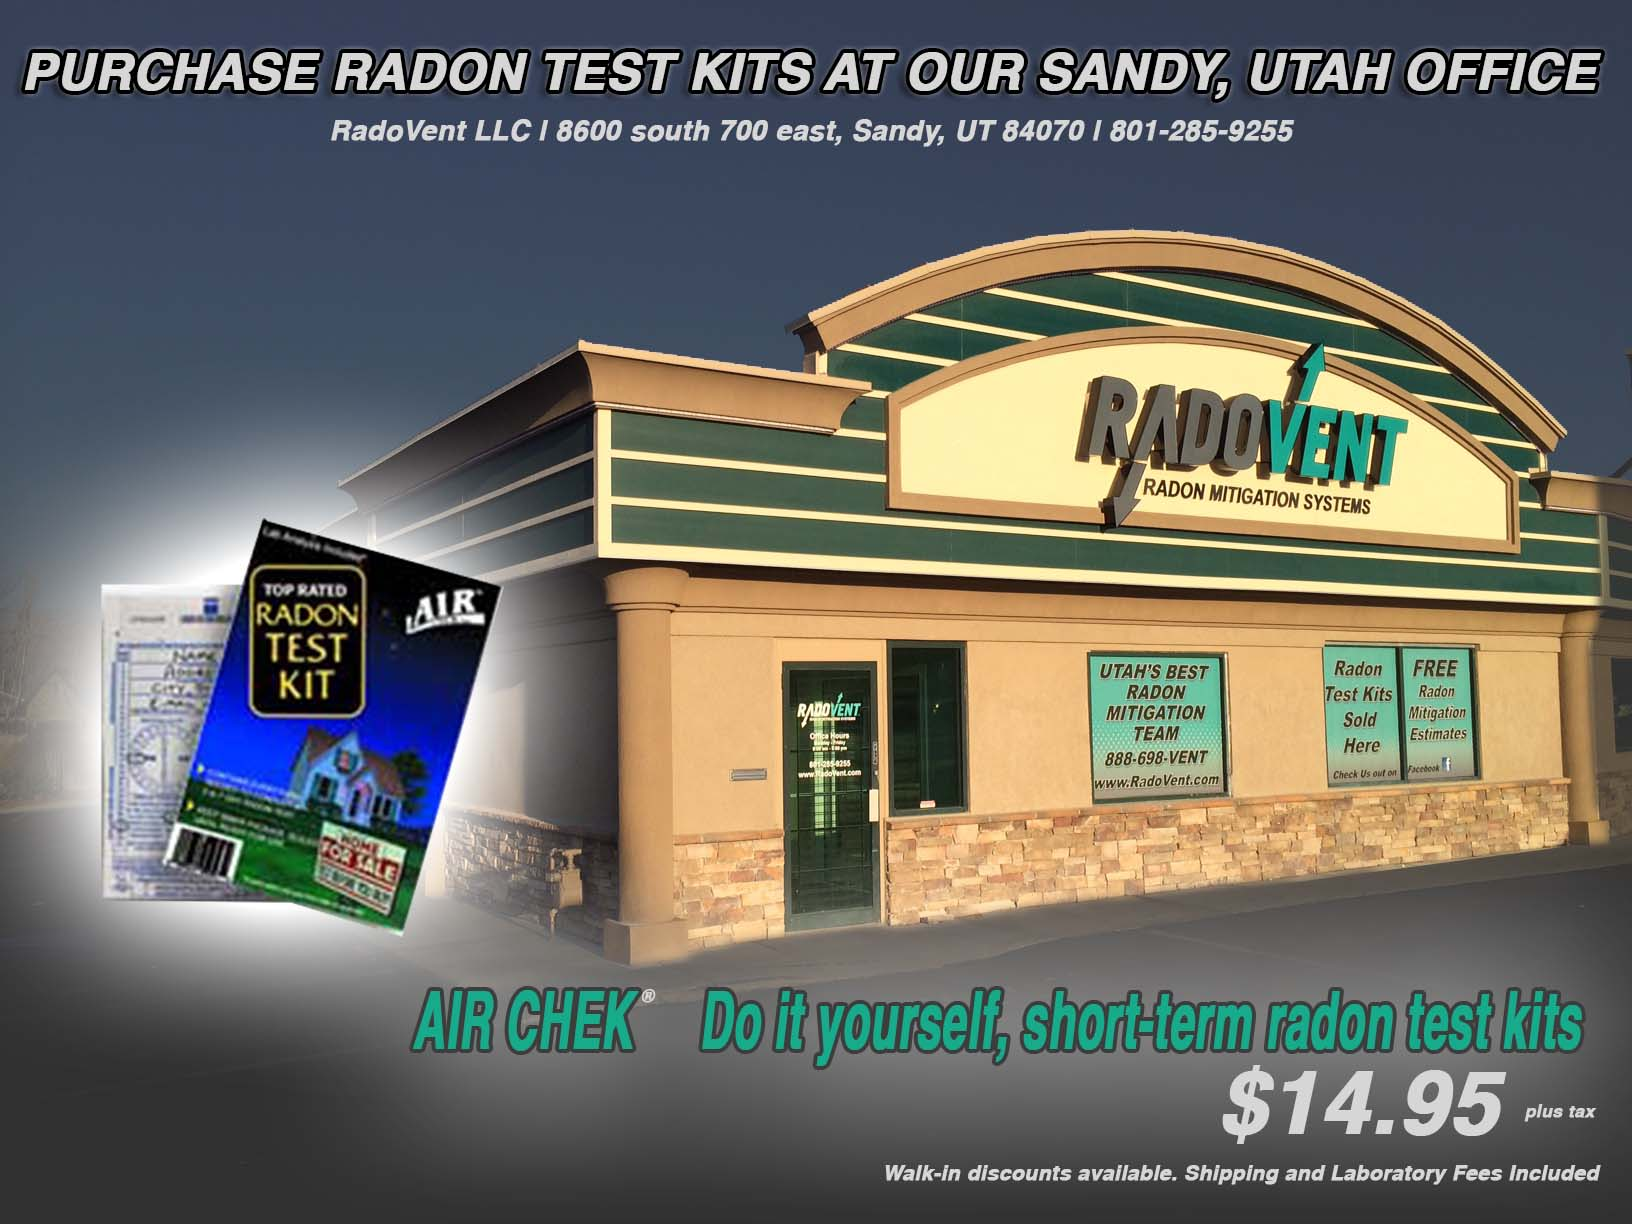 Utah 39 s radon mitigation pro 39 s - The office radon test kit ...